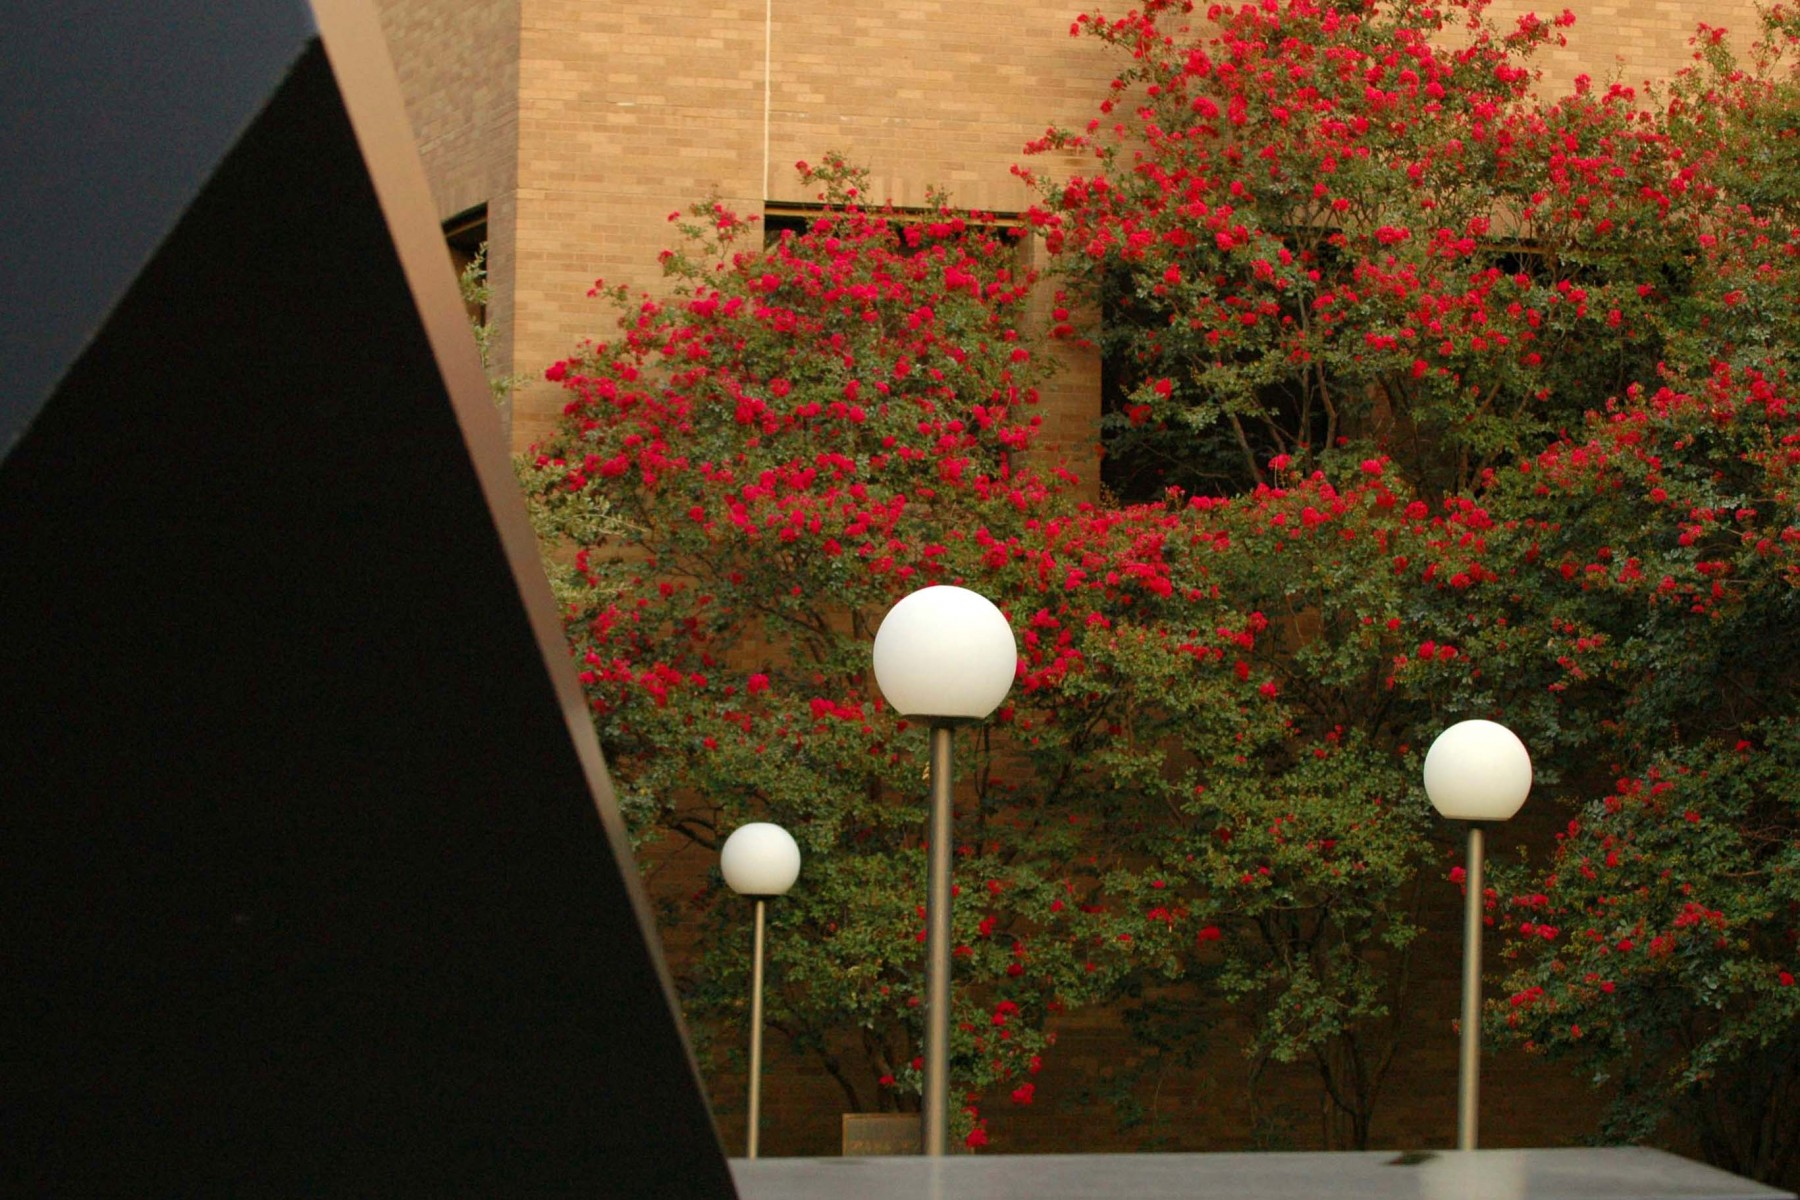 black sculpture on right, lamps and seasonal blossoms behind